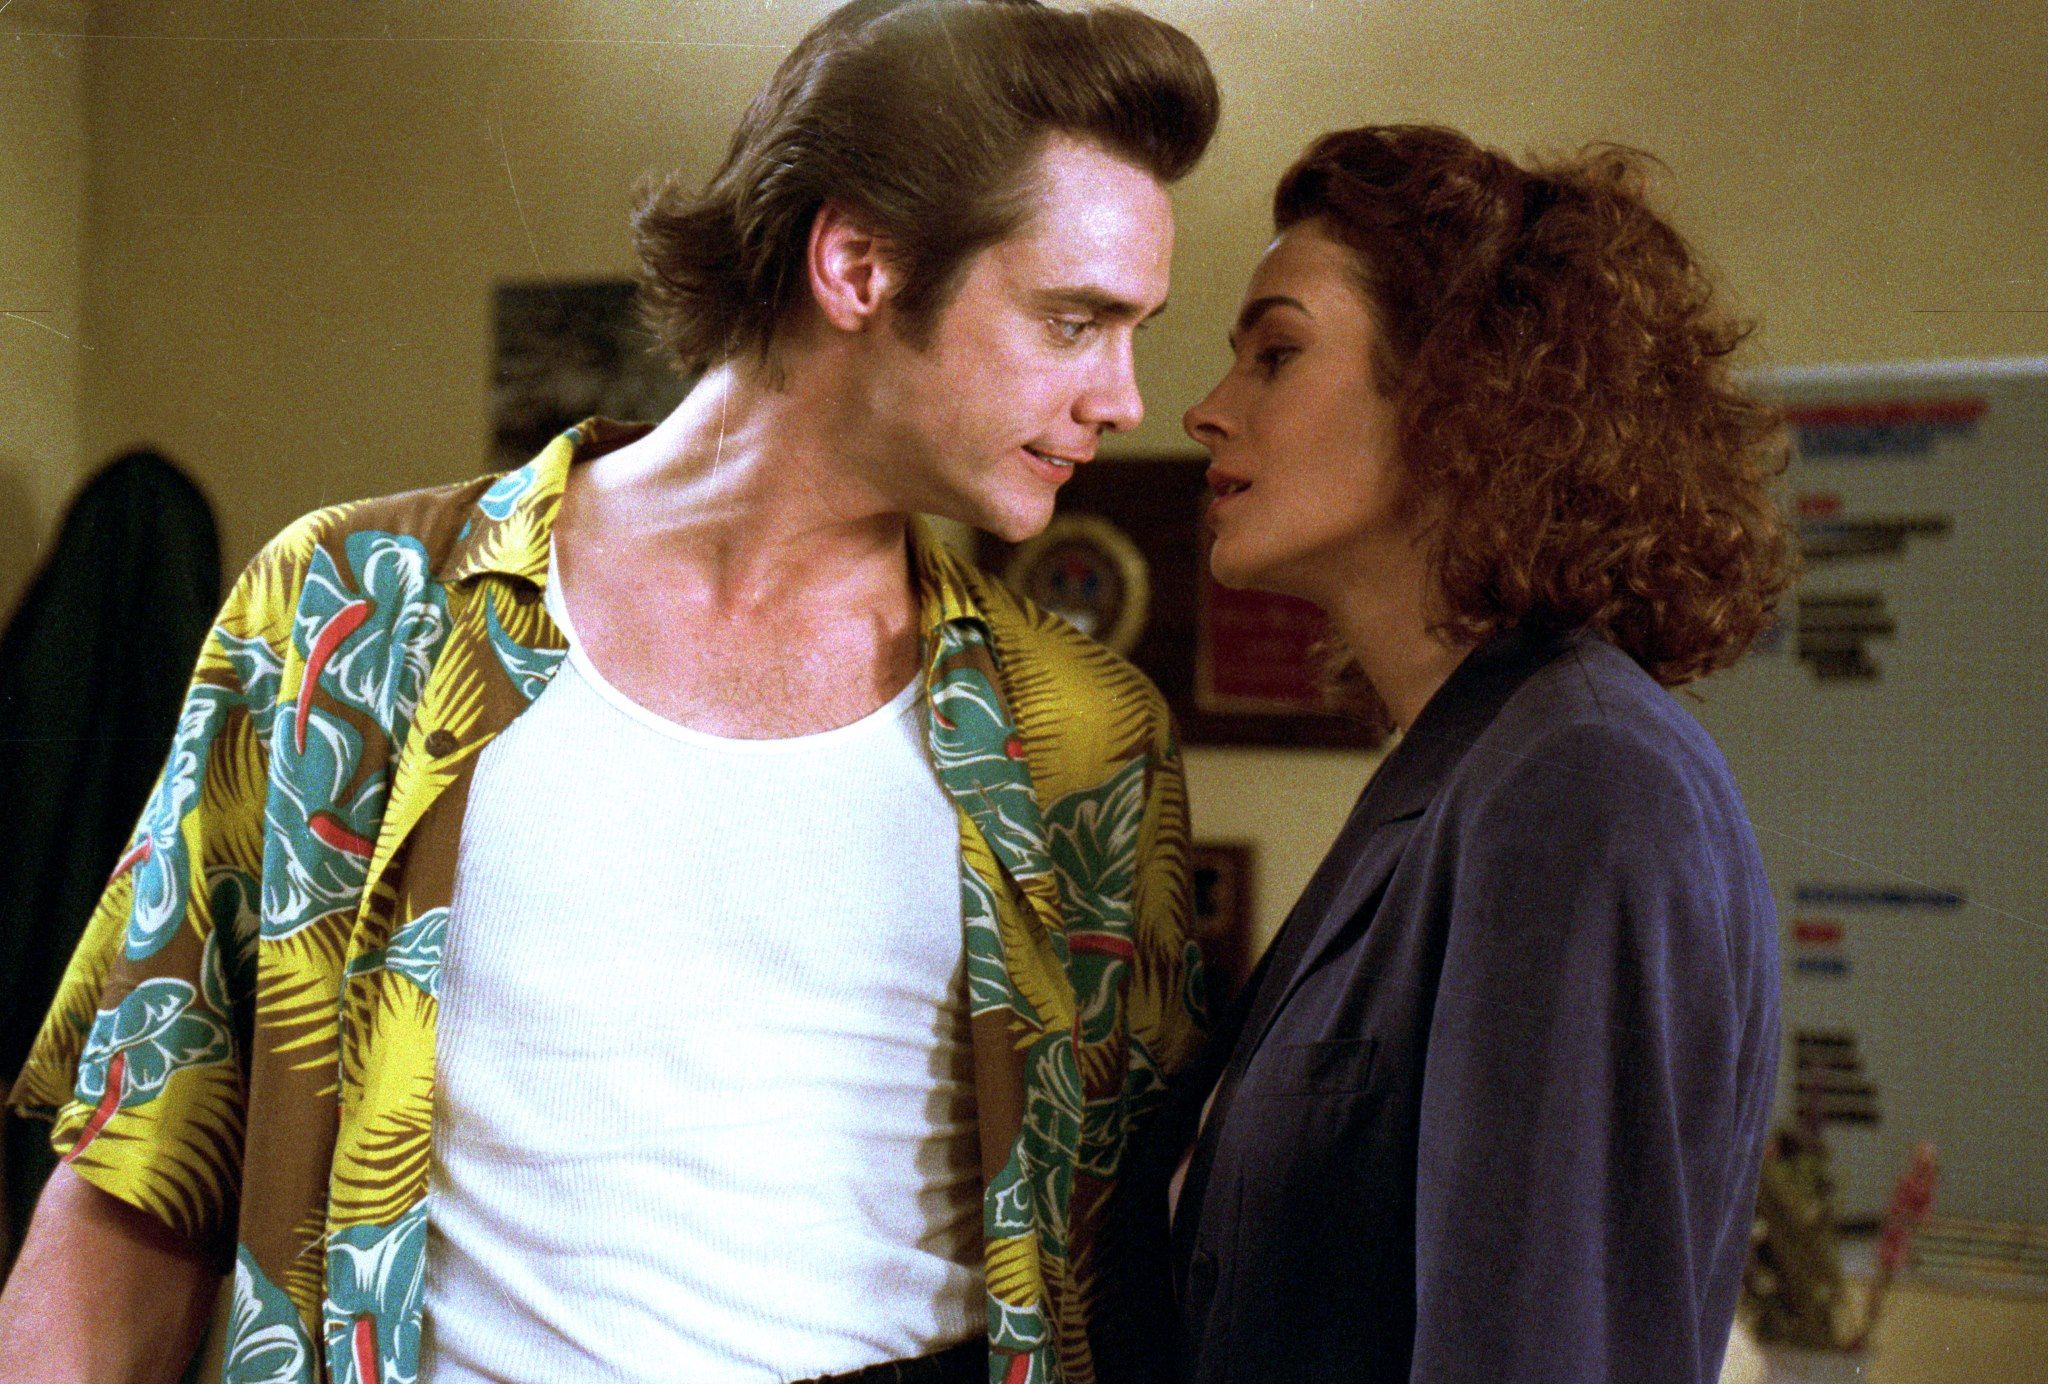 Sinful Cinema: Ace Ventura: Pet Detective, The Most